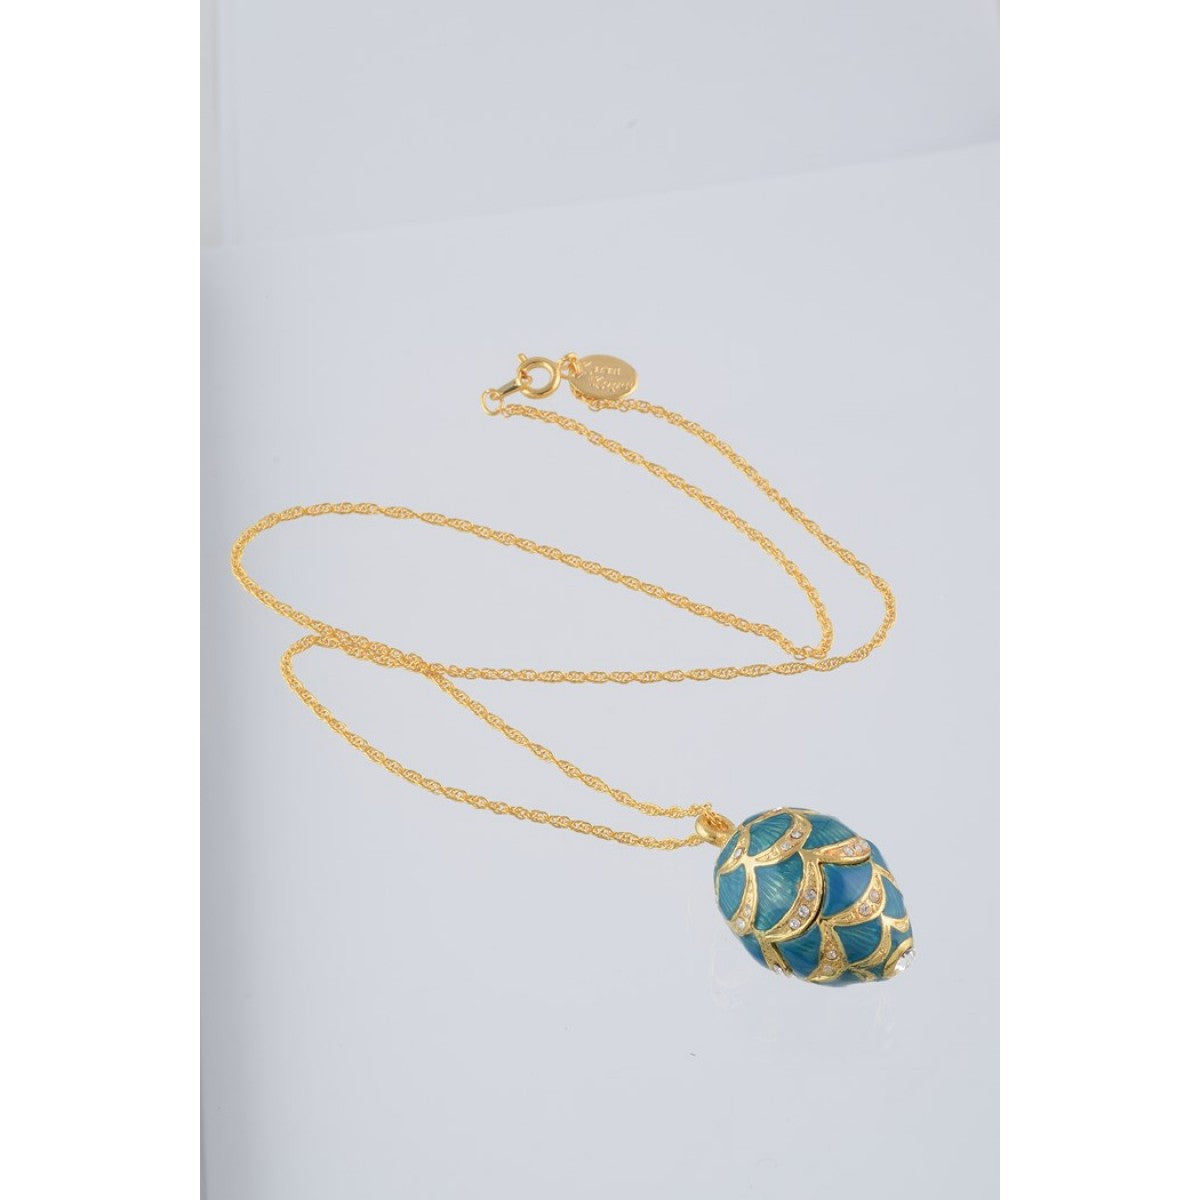 Blue & Gold Fabrege Egg Styled Pendant Necklace